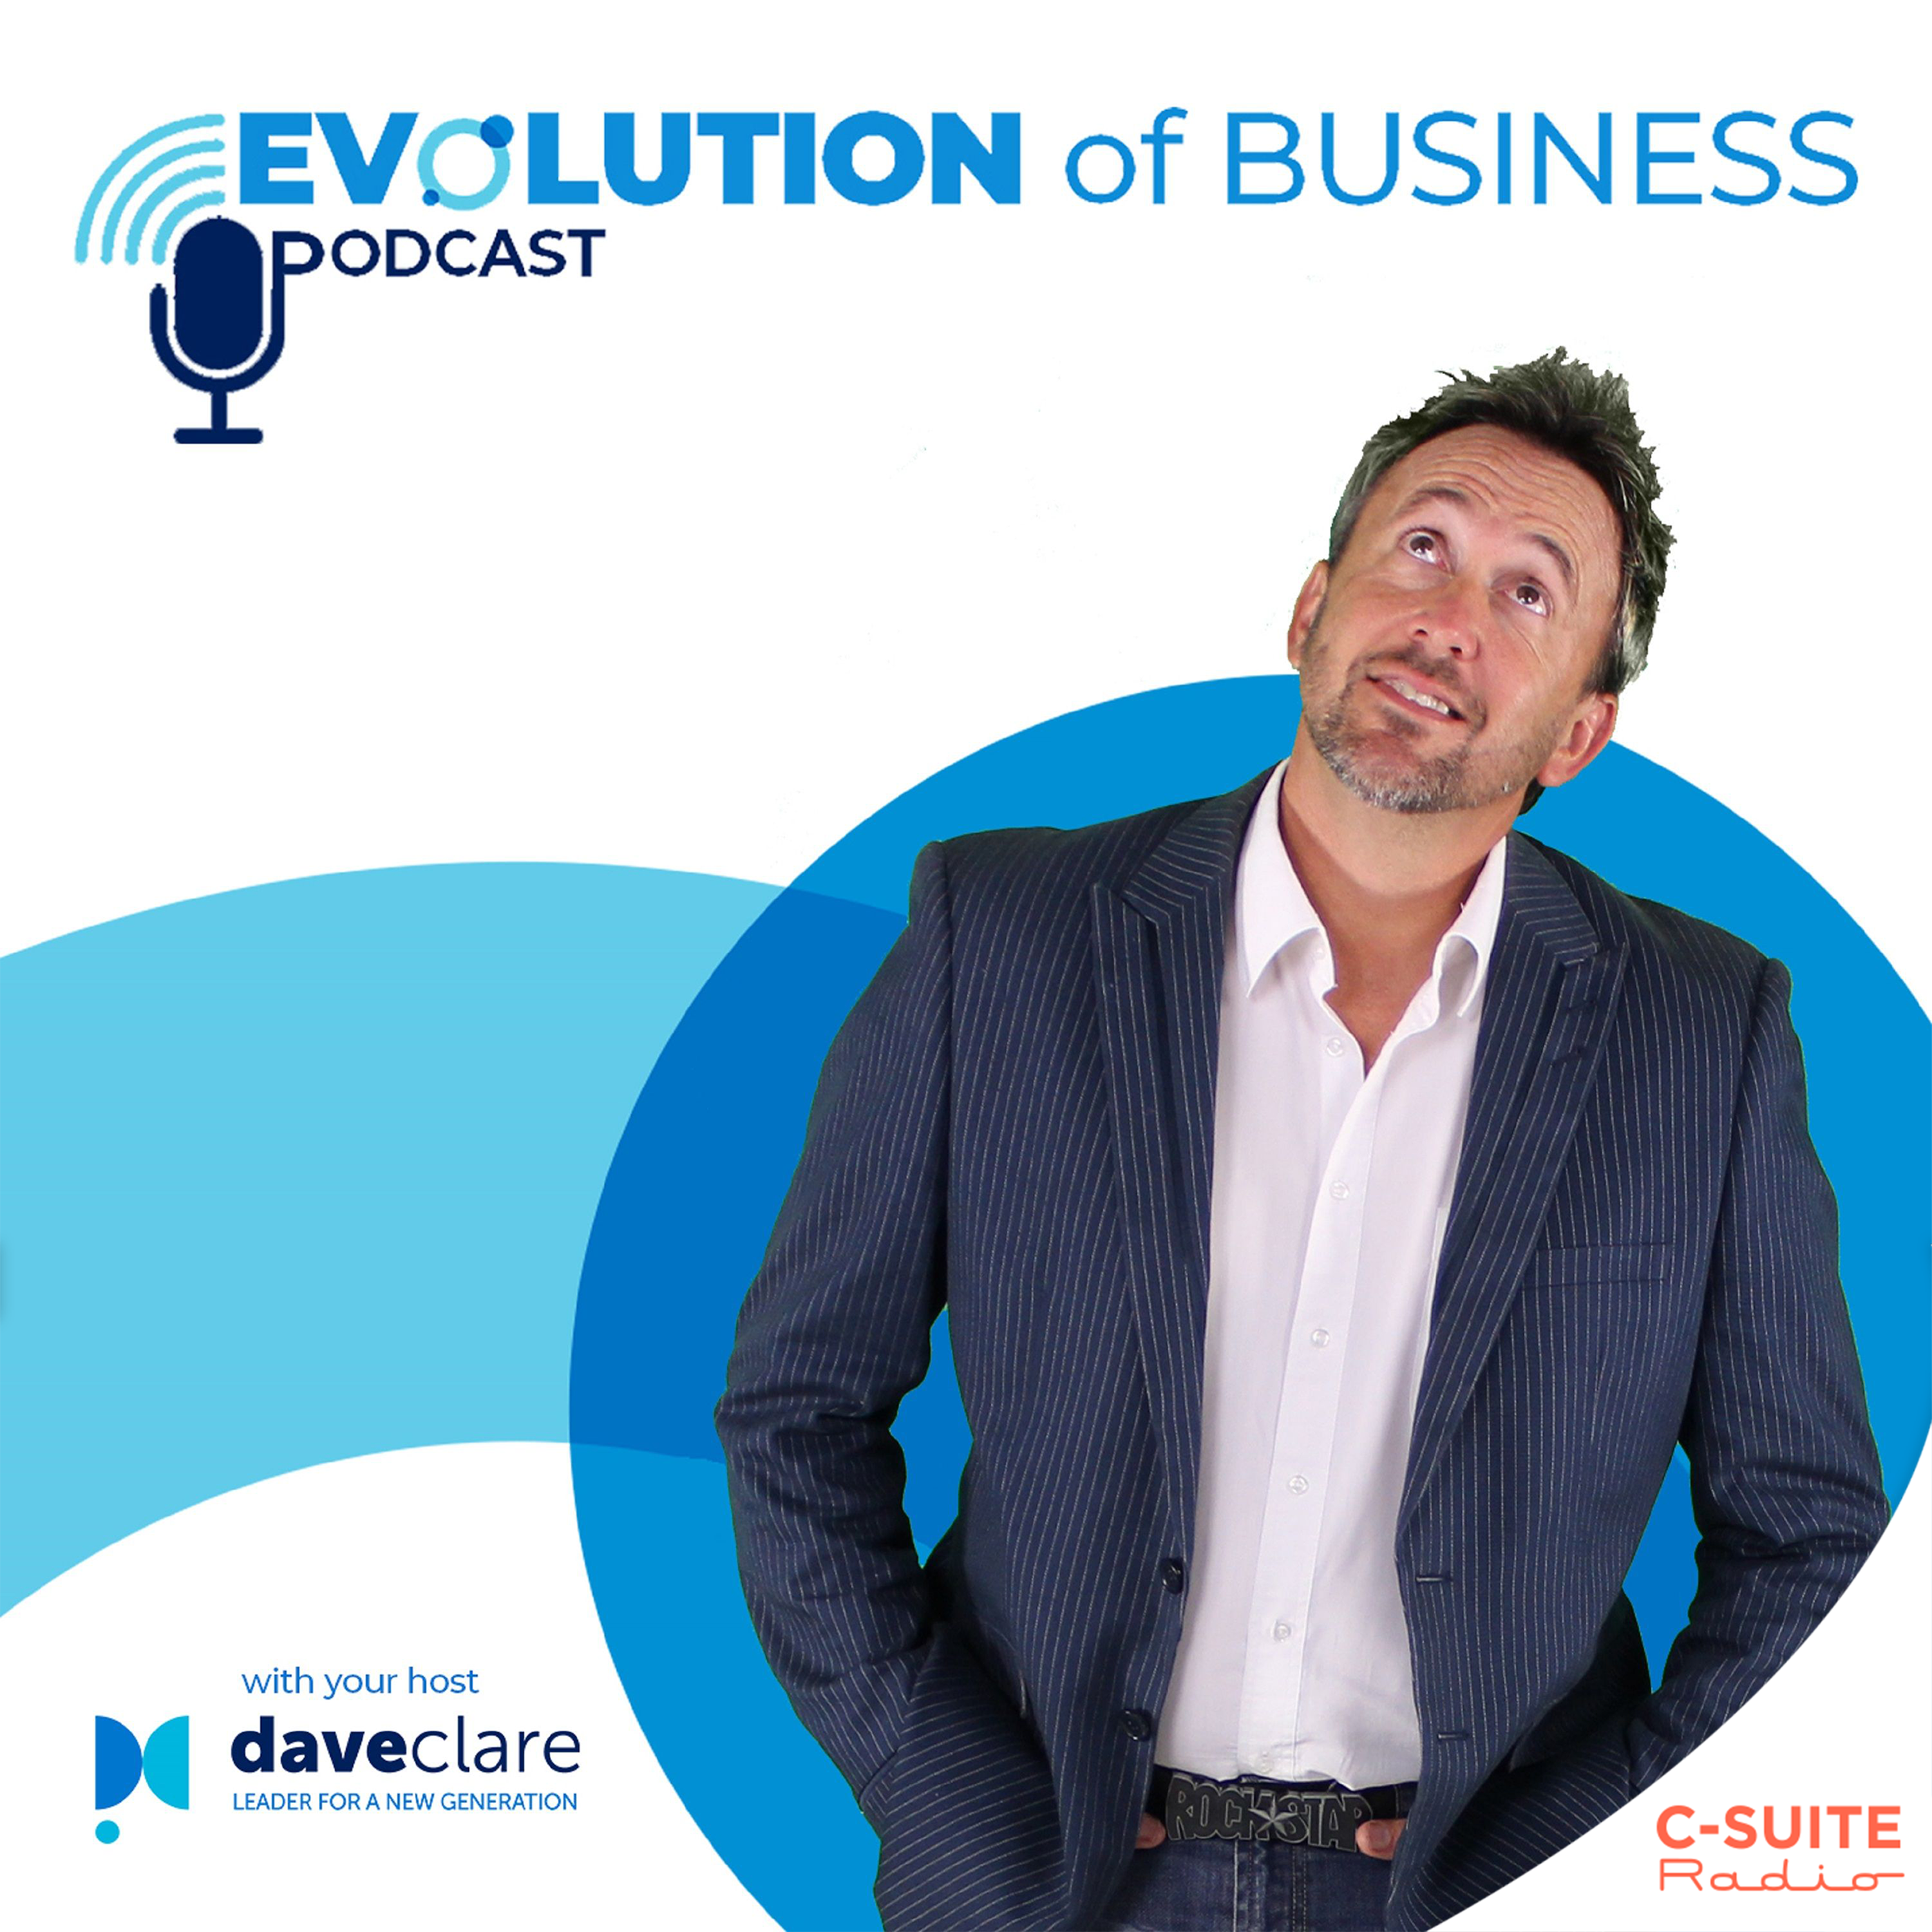 Evolution of Business Show